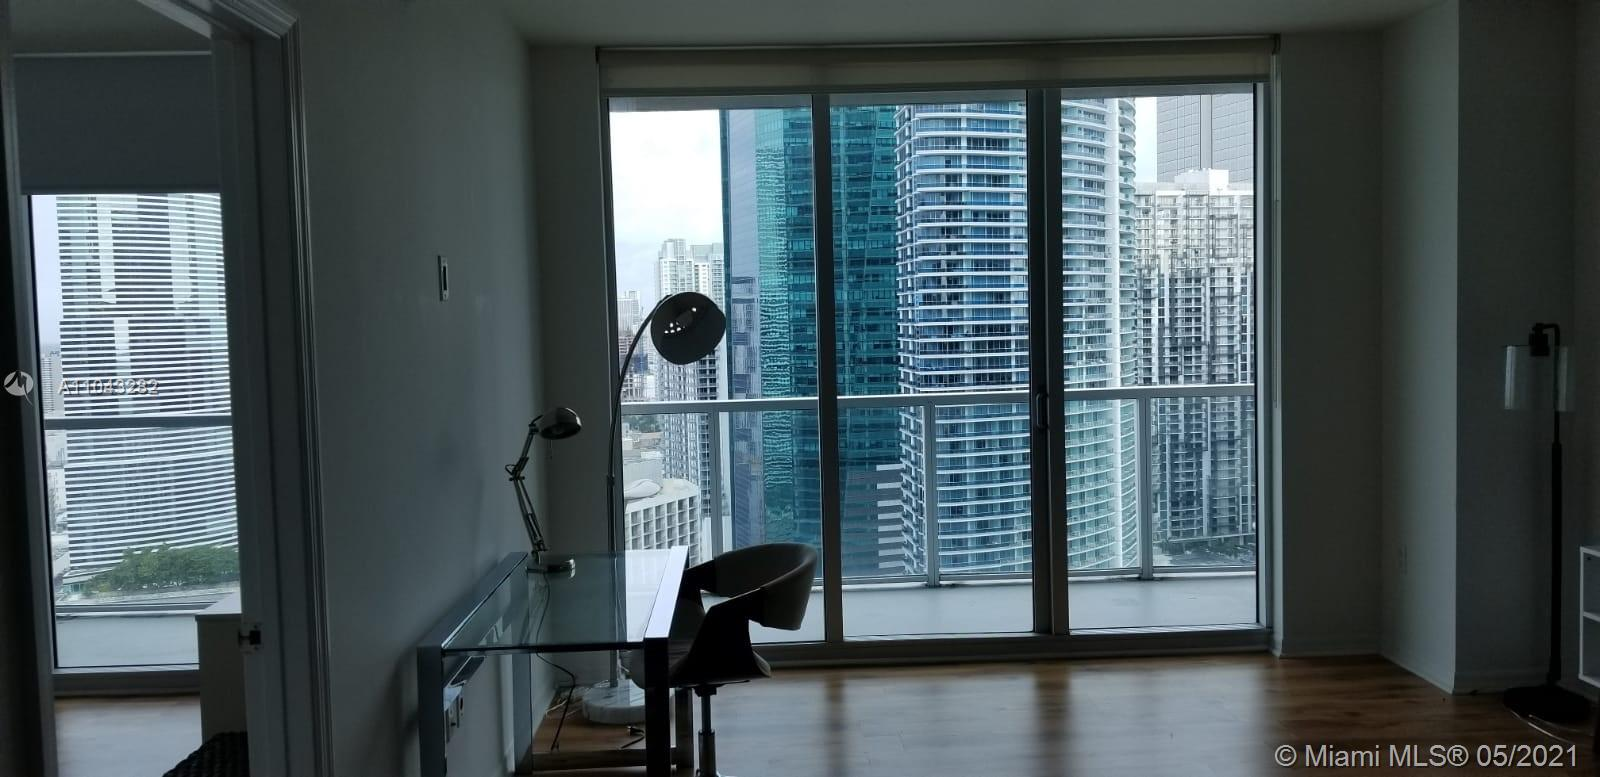 Amazing renovated 2 bedrooms /2 Bathrooms (shower & Jacuzzi tub). Laminate floor.Modern kitchen w/granite counter top, Italian cabinetry. Washer/Dryer in the unit. Amazing view from the 38th floor balcony. Building offer endless amenities: Vallet Parking,Lobby, 4 high speed elevators, Pool in the 11th floor, Pool in the 42th floor , Spa, Gym. Few steps from the Brickell City Center, the best bars and restaurants. Great apartment at a great price in a very attractive and requested area. Don't loose the opportunity to buy your new home! You can also decide to buy it as investment, rent it and receive a good income. Tenant inside until Aug2021.